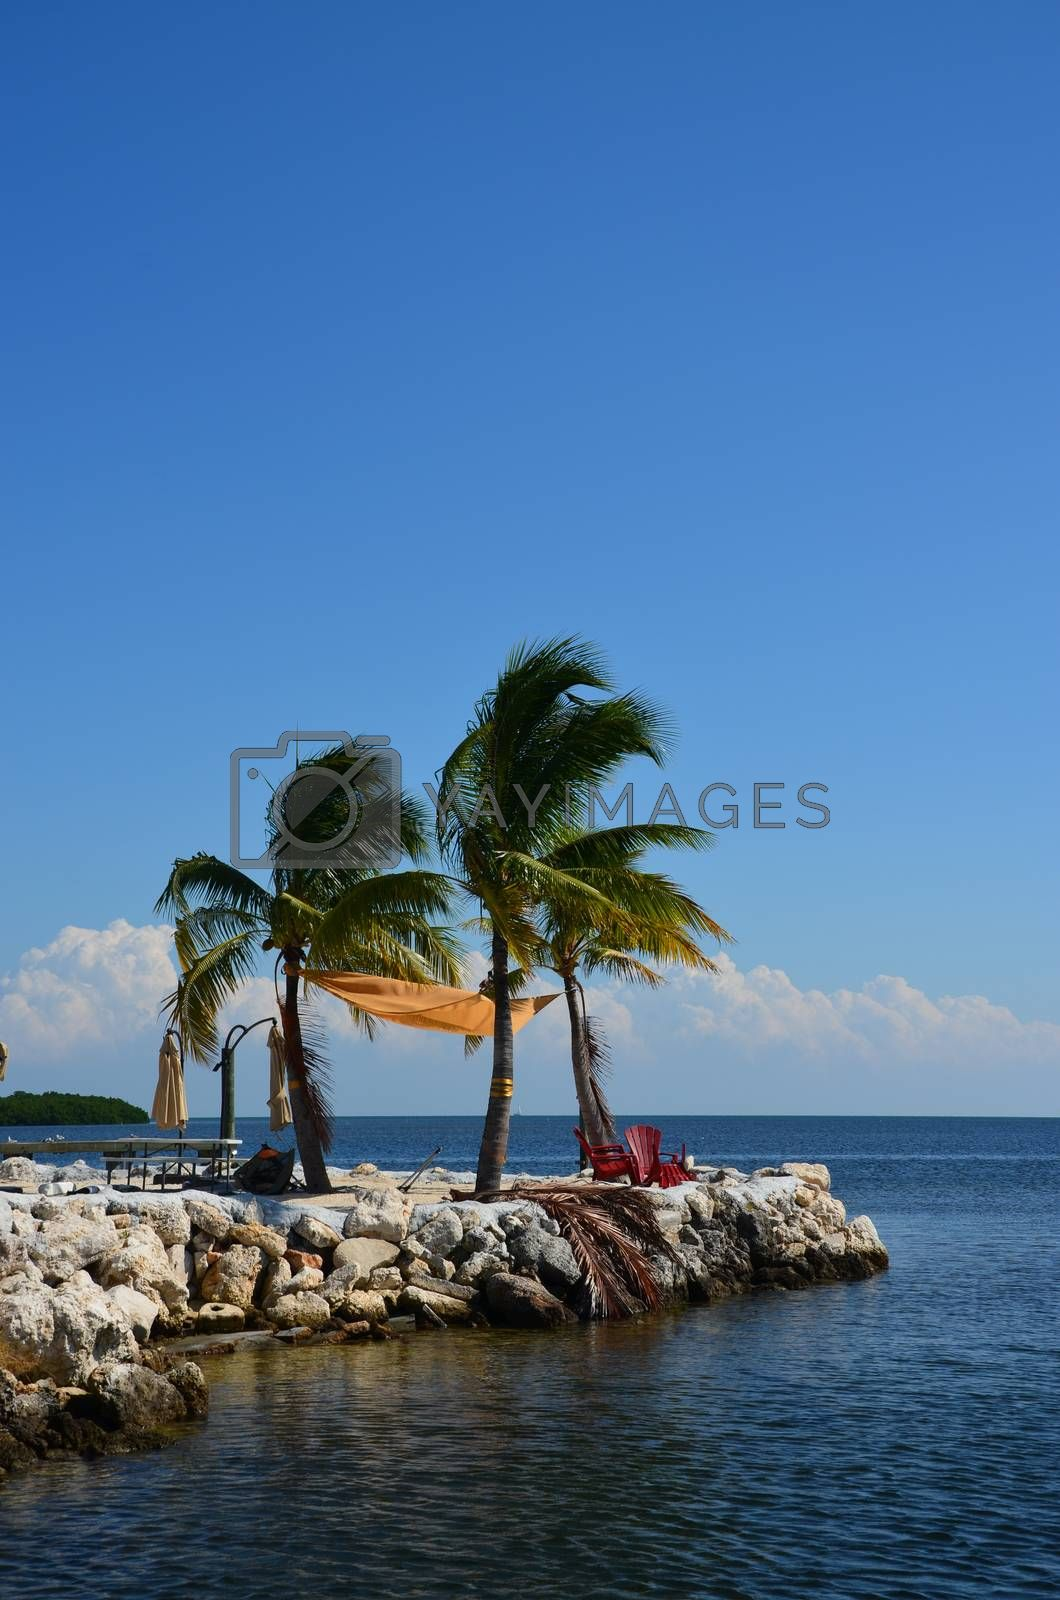 A quiet place to sit and enjoy the ocean in the florida keys. Two charis and a few palm trees complete the scene.